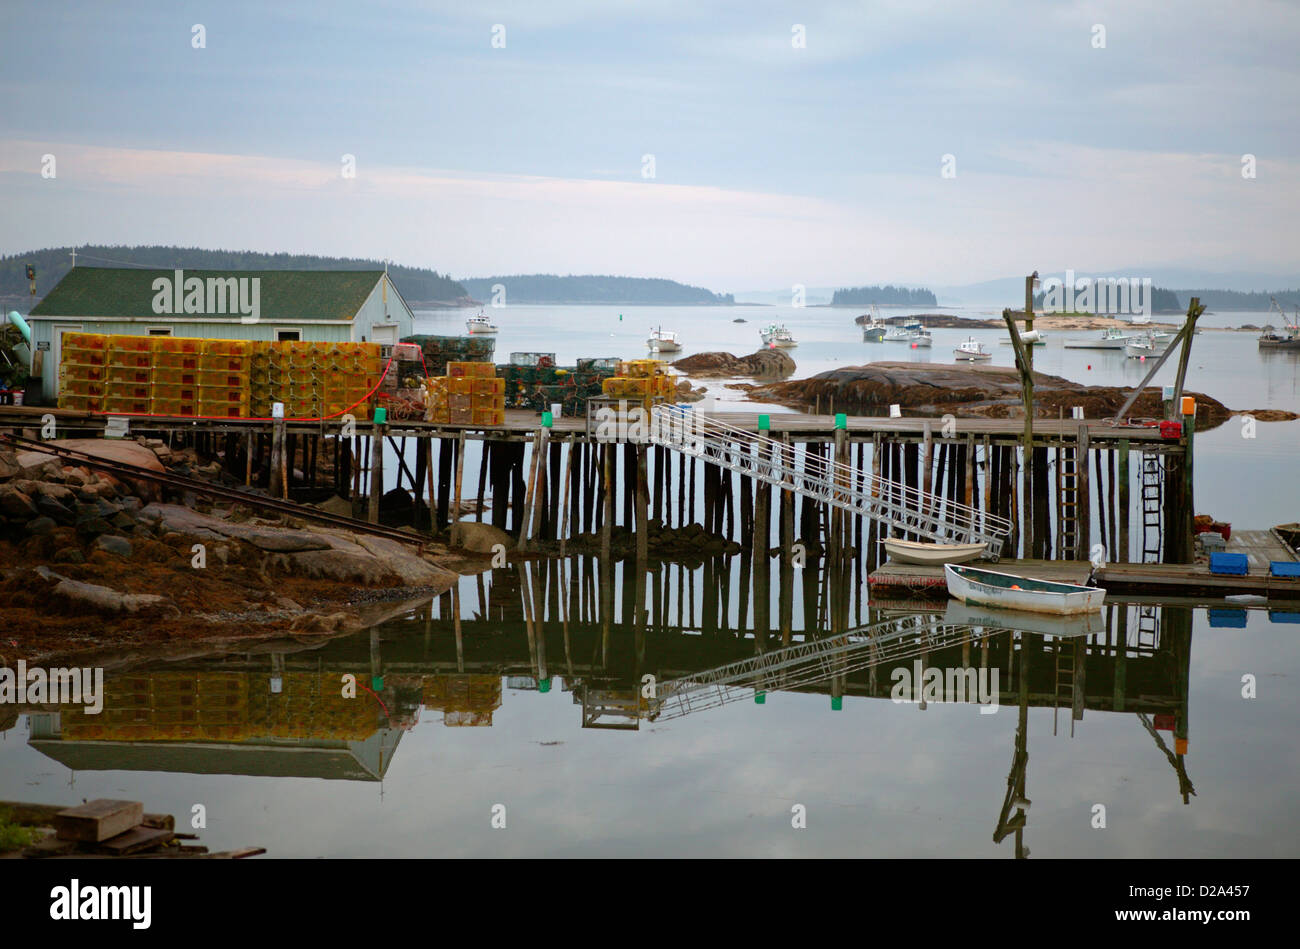 Lobster Pots Stacked On A Dock In Stonington, Maine. - Stock Image